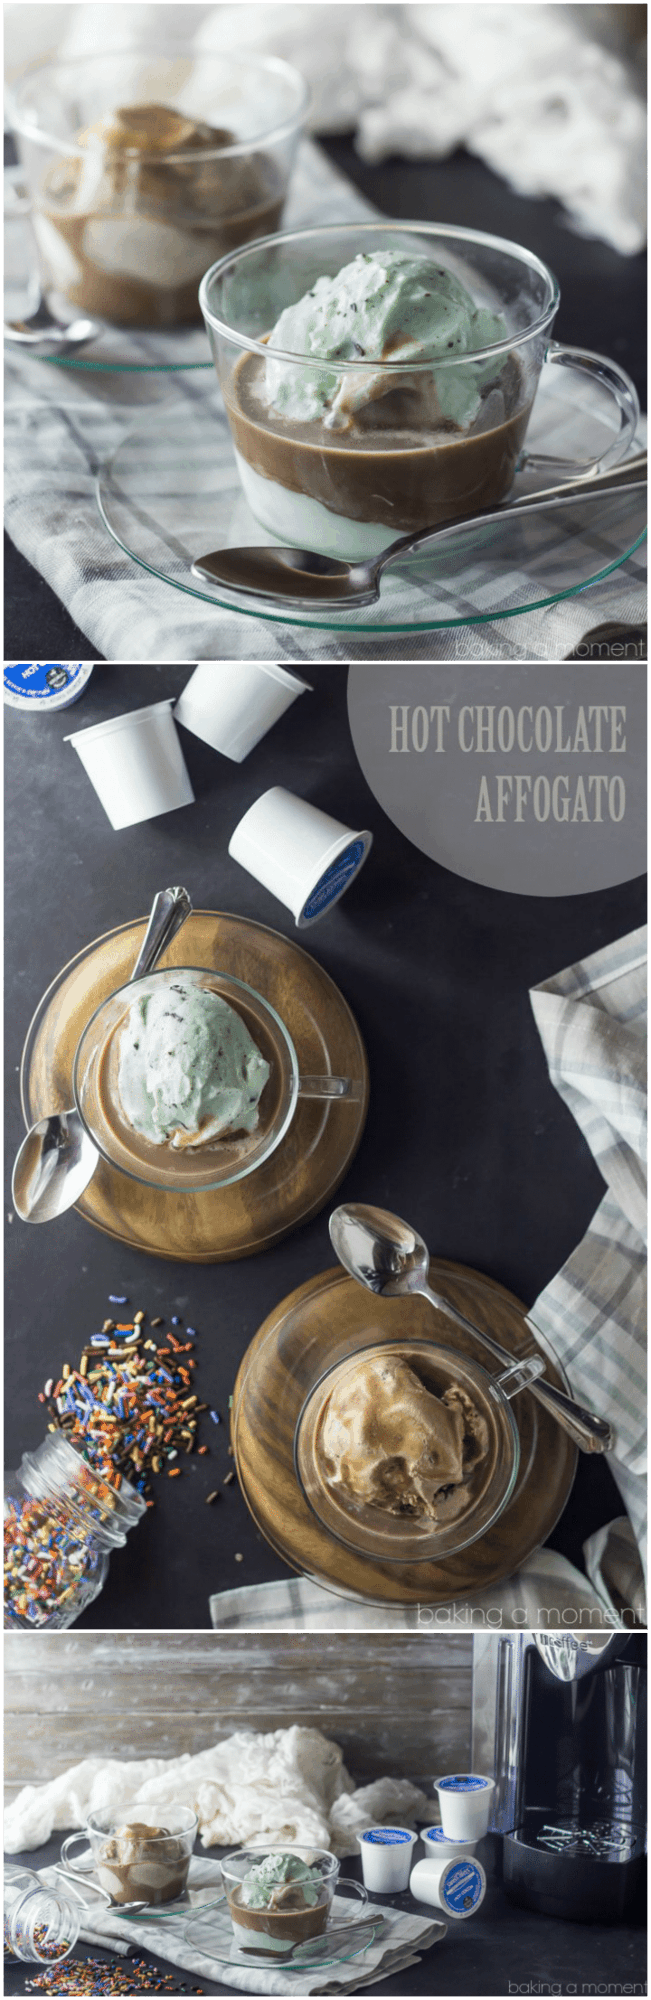 Hot Chocolate Affogato- cool, creamy ice cream, drowned in rich hot chocolate!  So easy and such a treat #ad